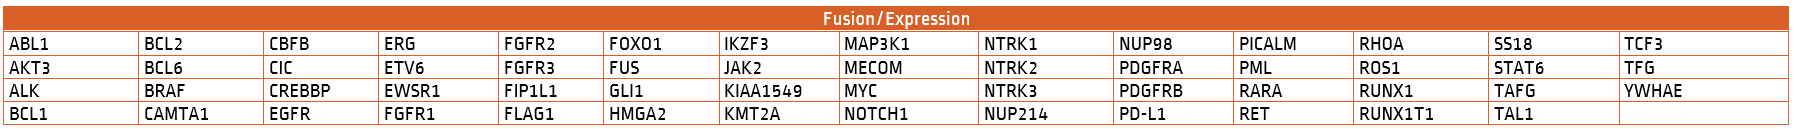 Solid Tumor Fusion Expression Profile Test